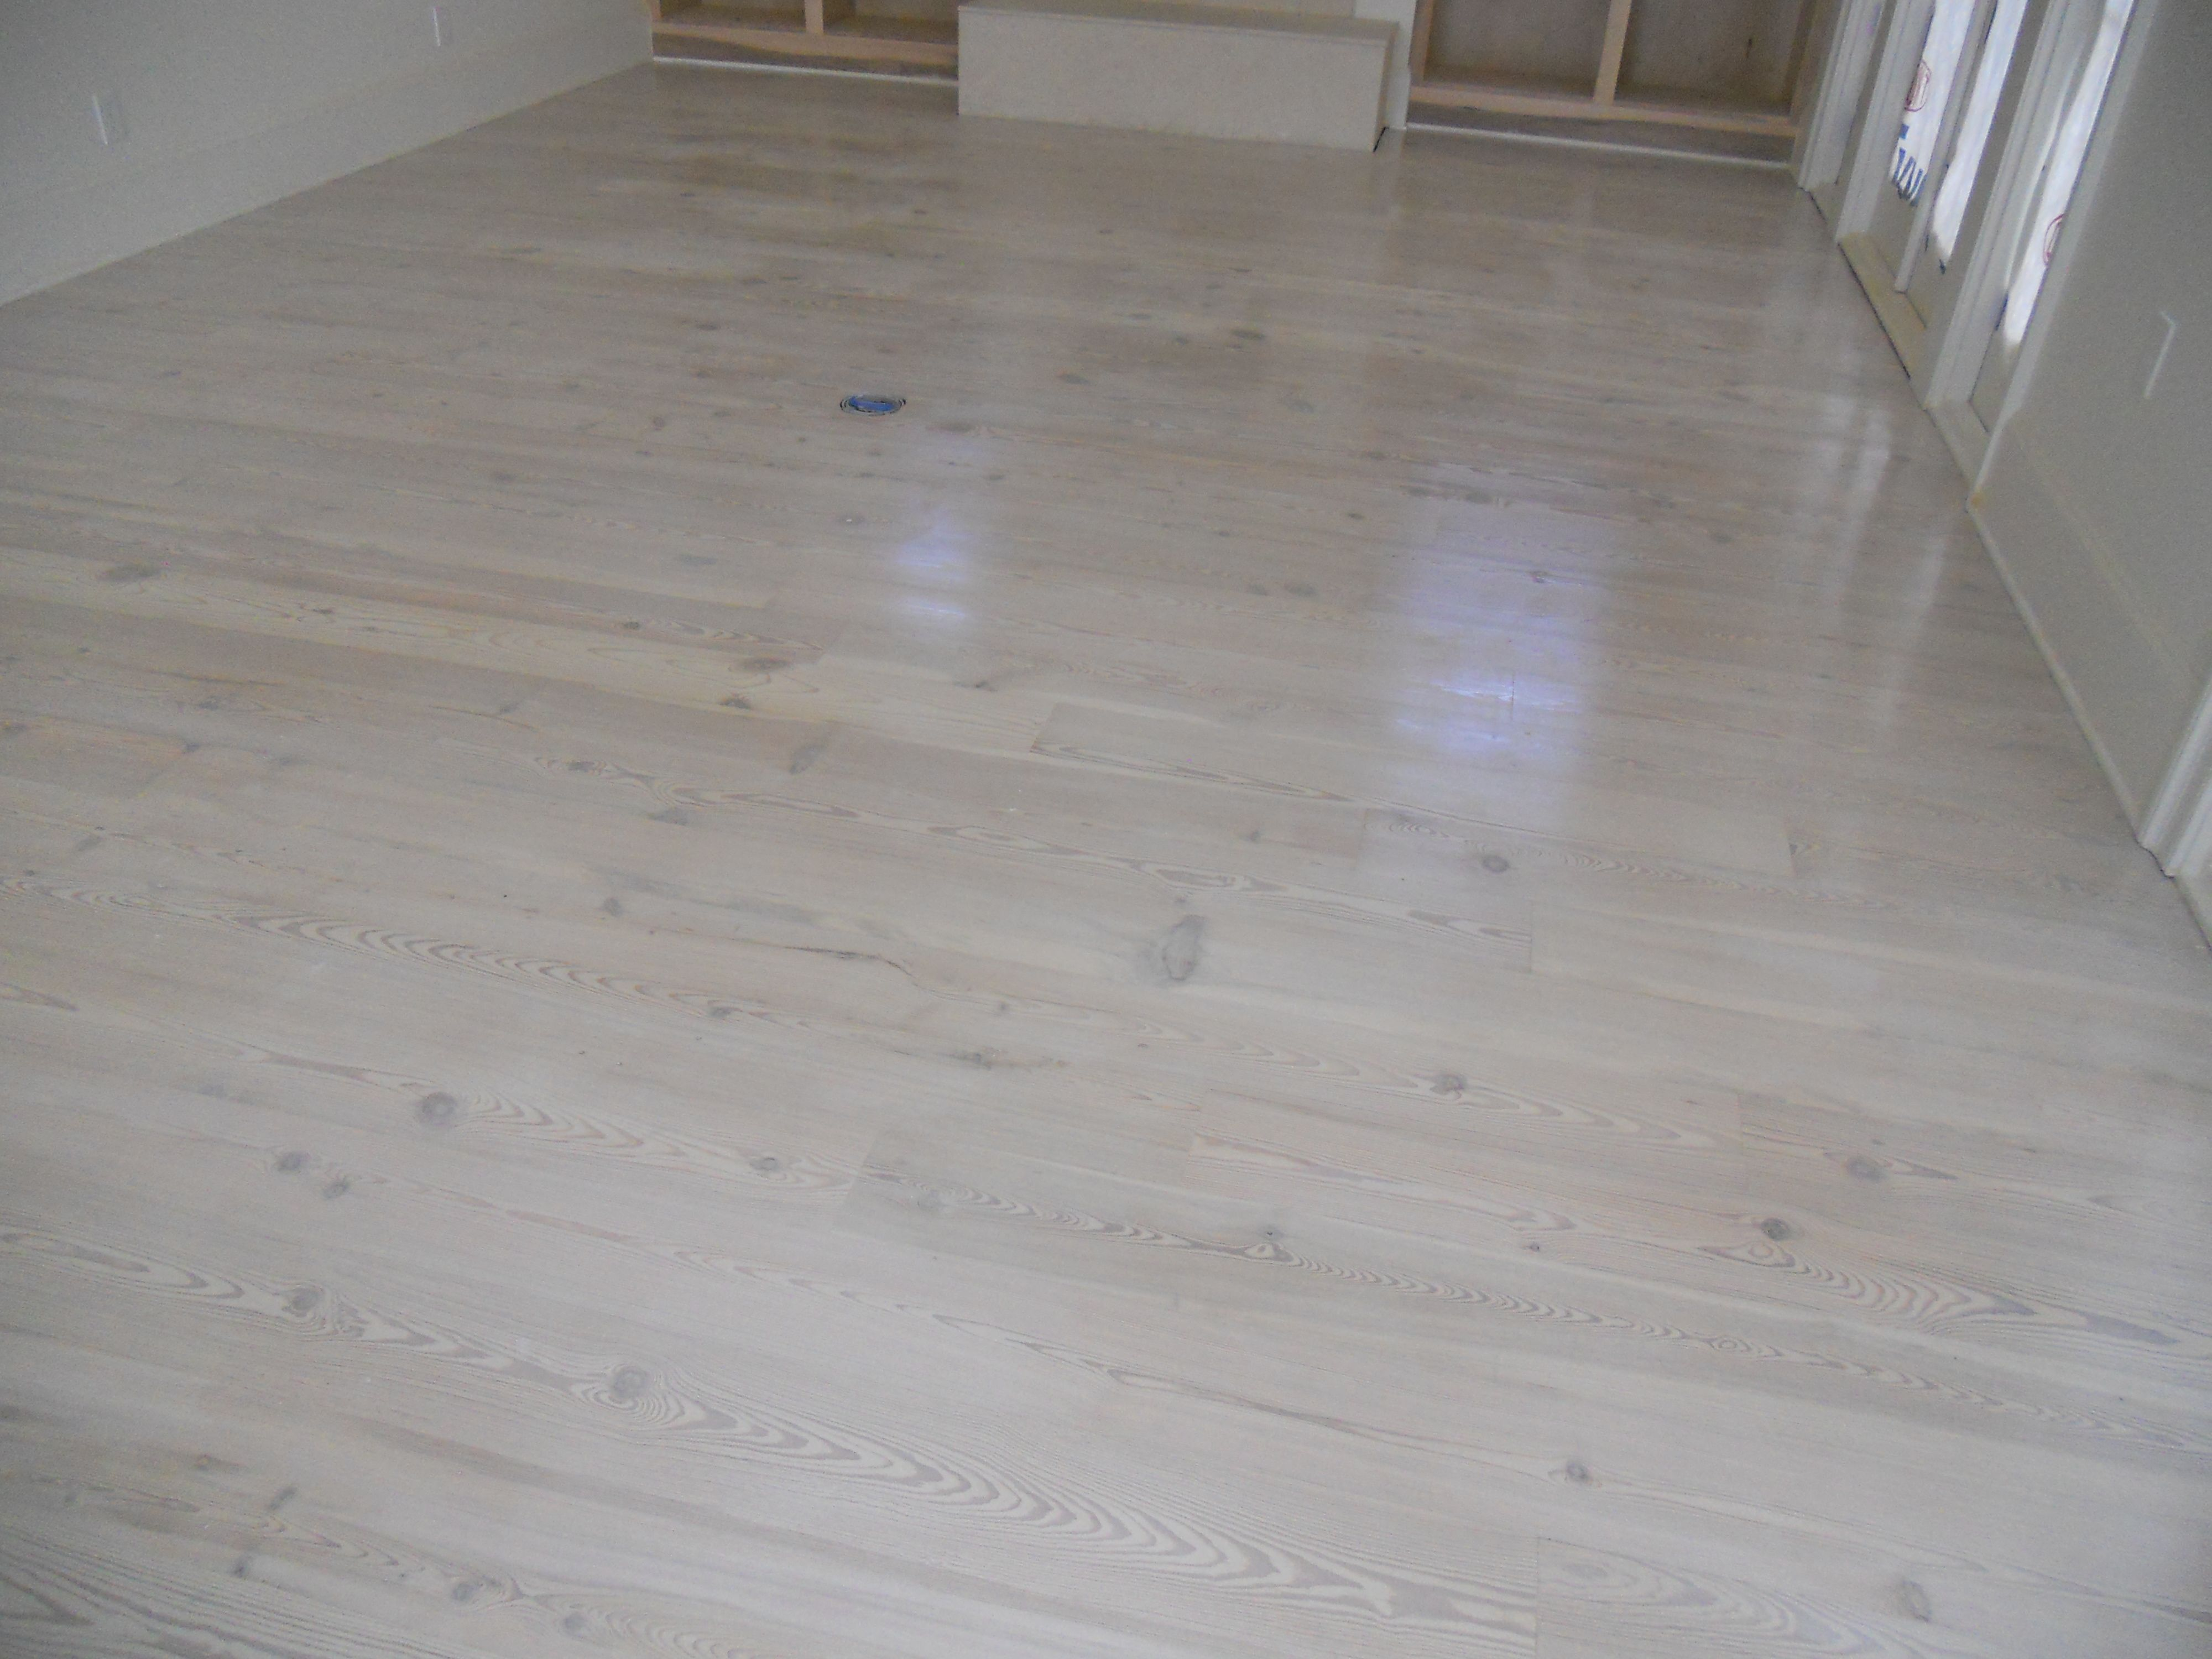 Pickled Floors Pictures Google Search Flooring Floor Colors